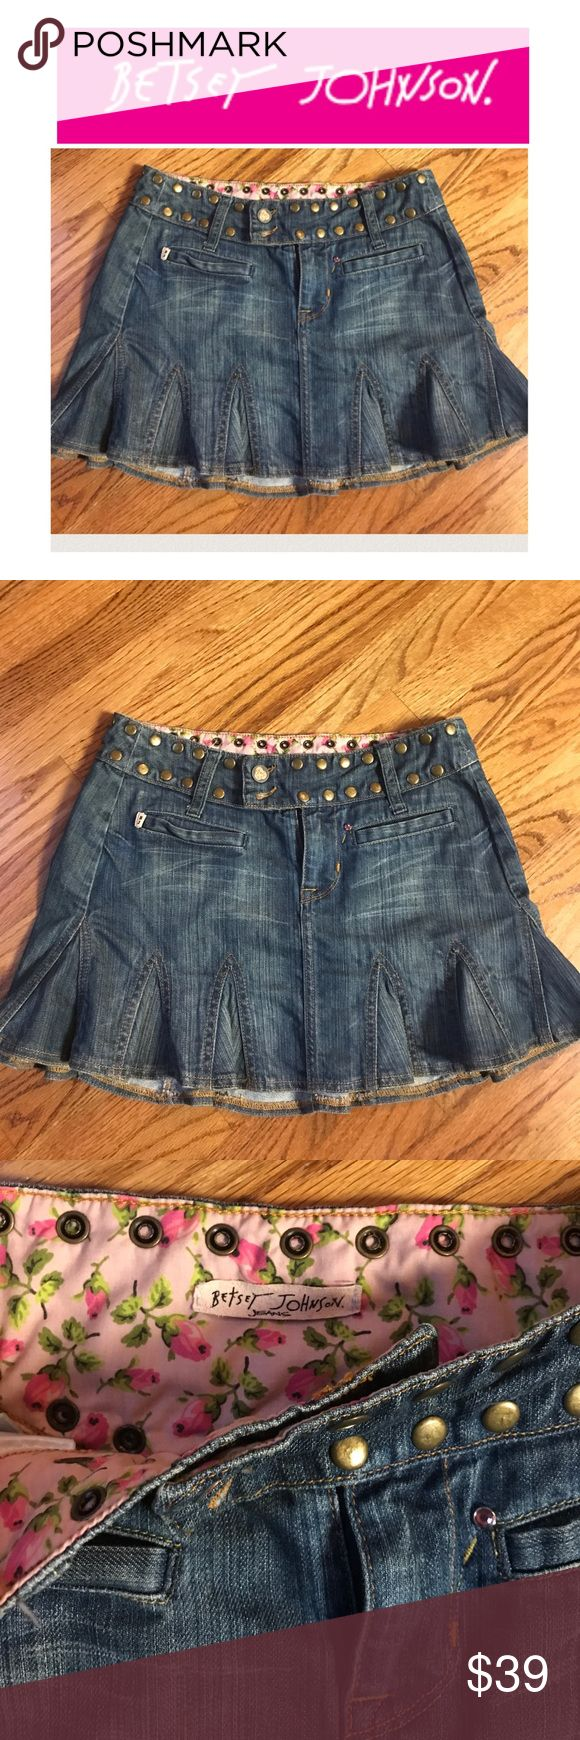 Betsy Johnson denim studded jean skirt Betsy Johnson denim studded cheerleader style jean skirt classic fun Betsy she would probably pair this with tights and a cute chunky shoe or wear this plain with sandals or a cute boot this is classic Betsy . Betsey Johnson Skirts Midi